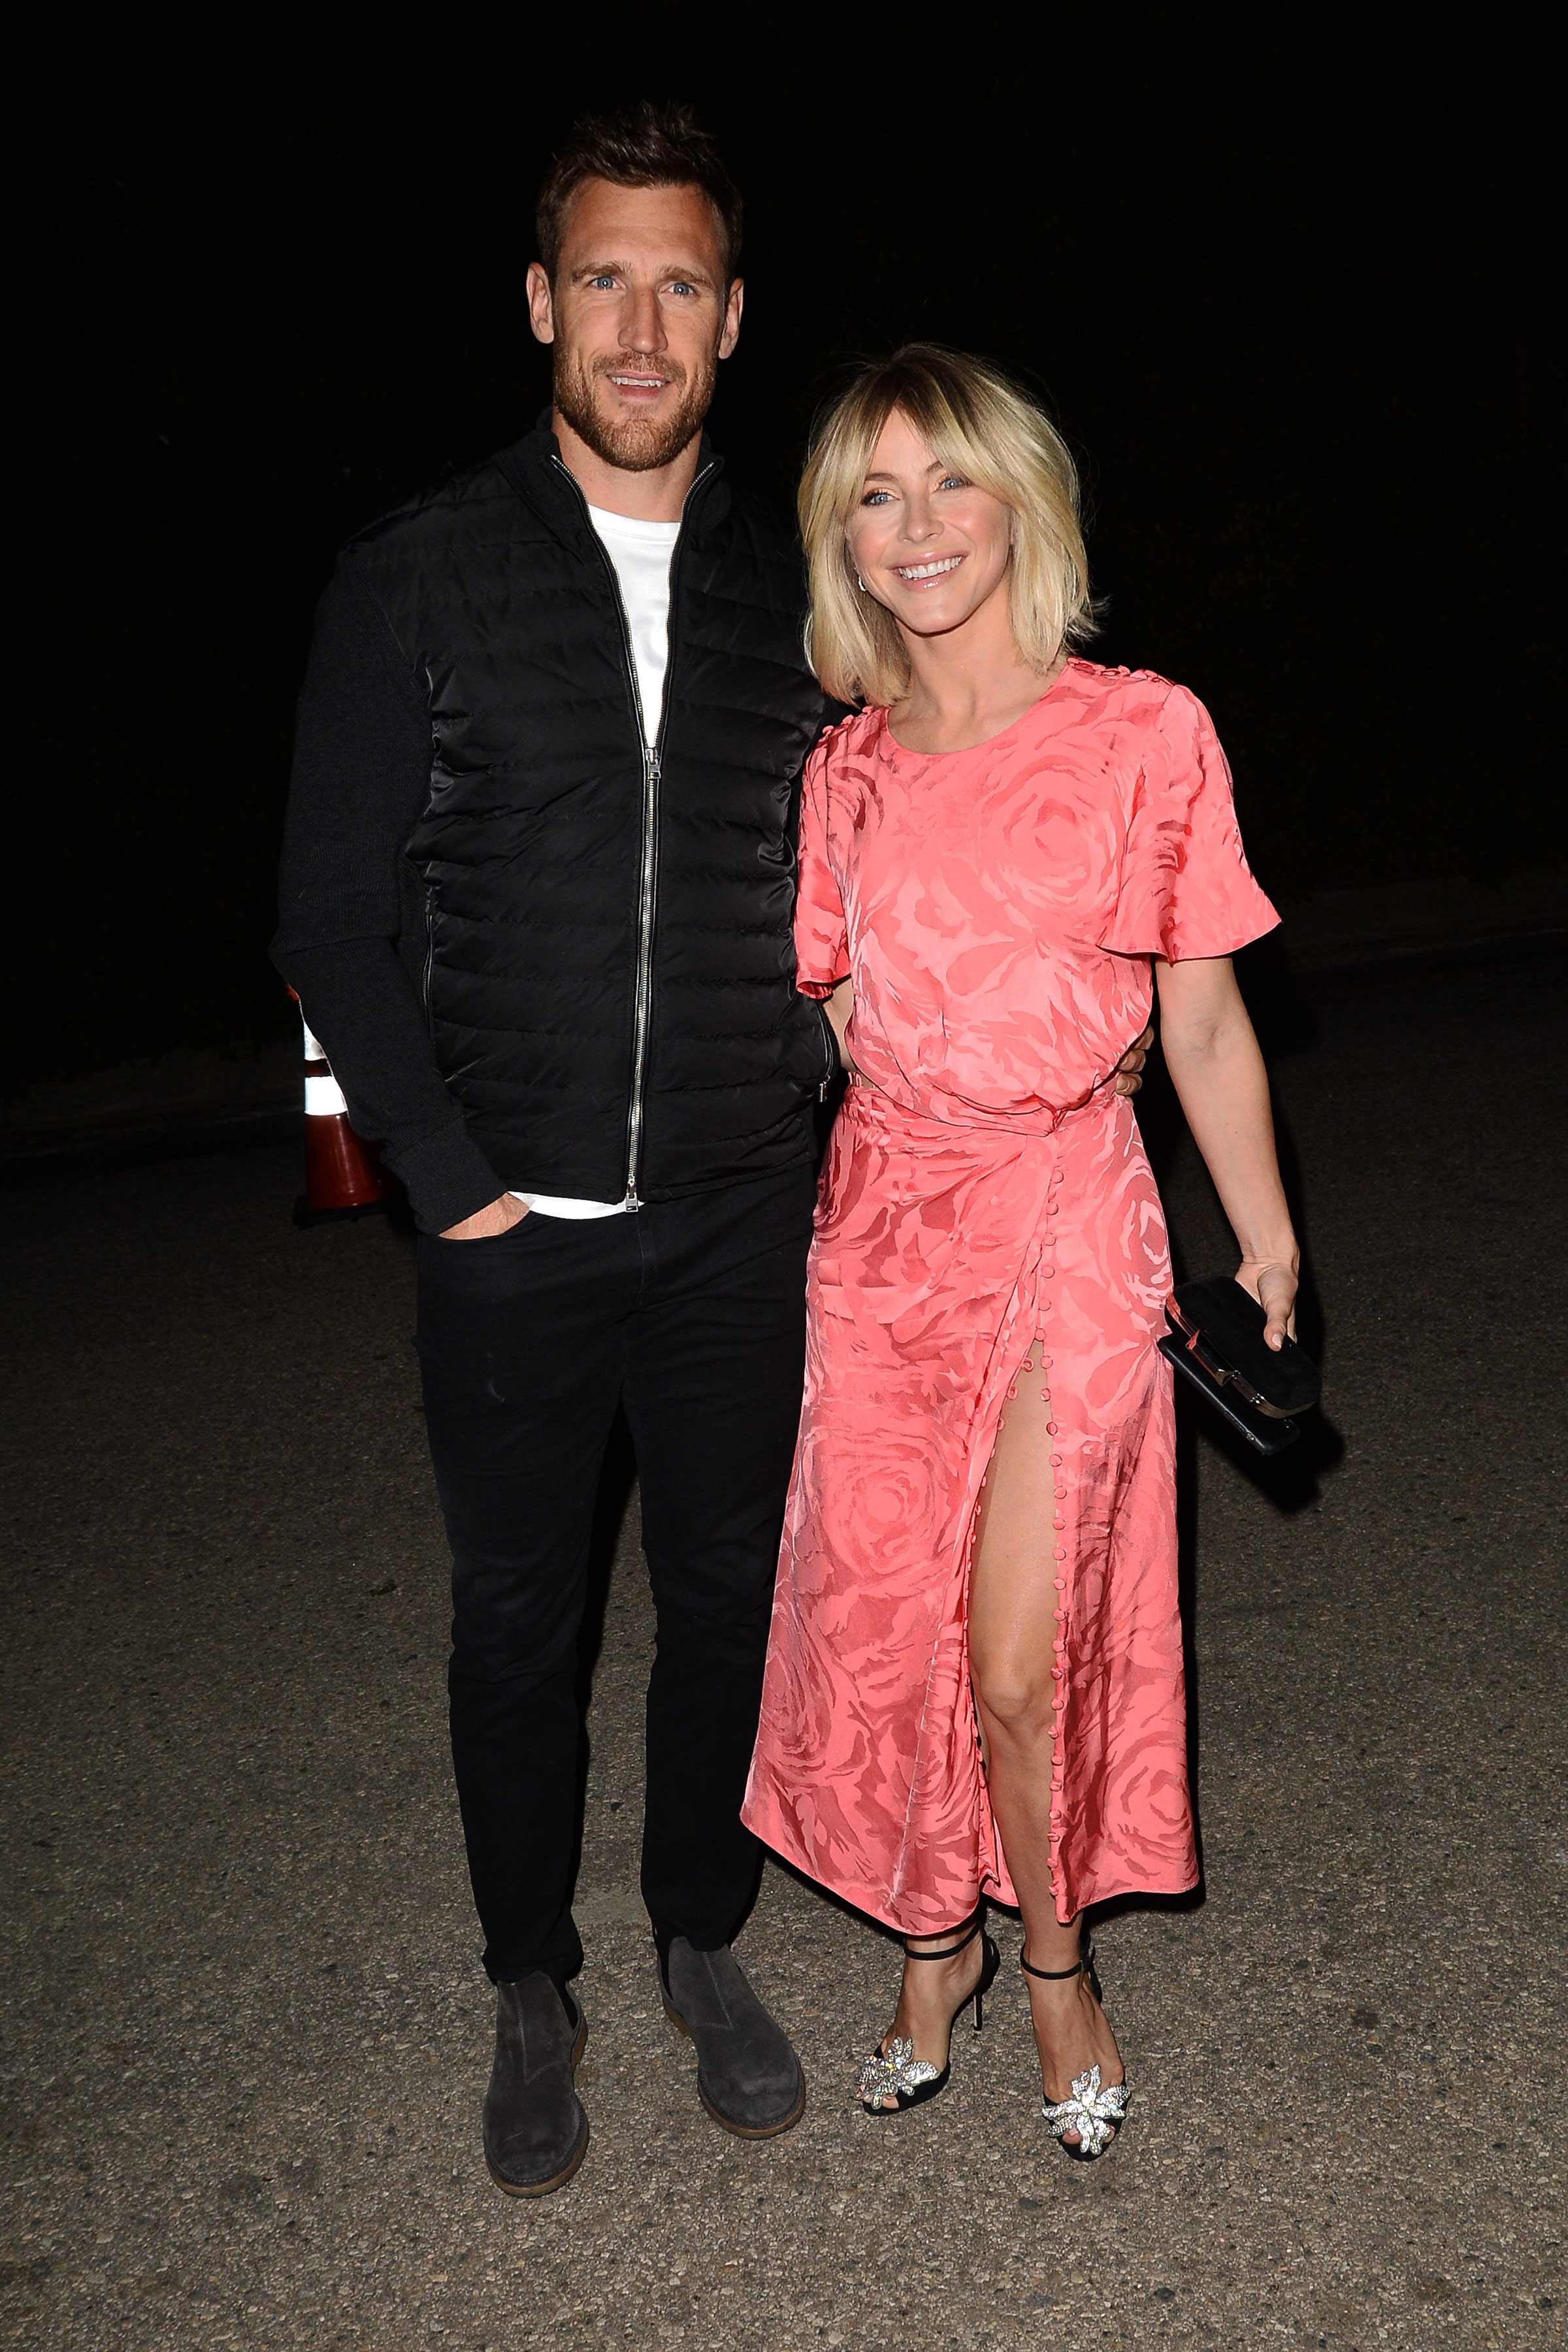 """Julianne Hough WME - The Dancing With the Stars judge made her way to the WME bash too. """"Dancing our way into Oscar weekend,"""" she captioned a video on Saturday, February 23, of herself having some fun with husband Brooks Laich ."""